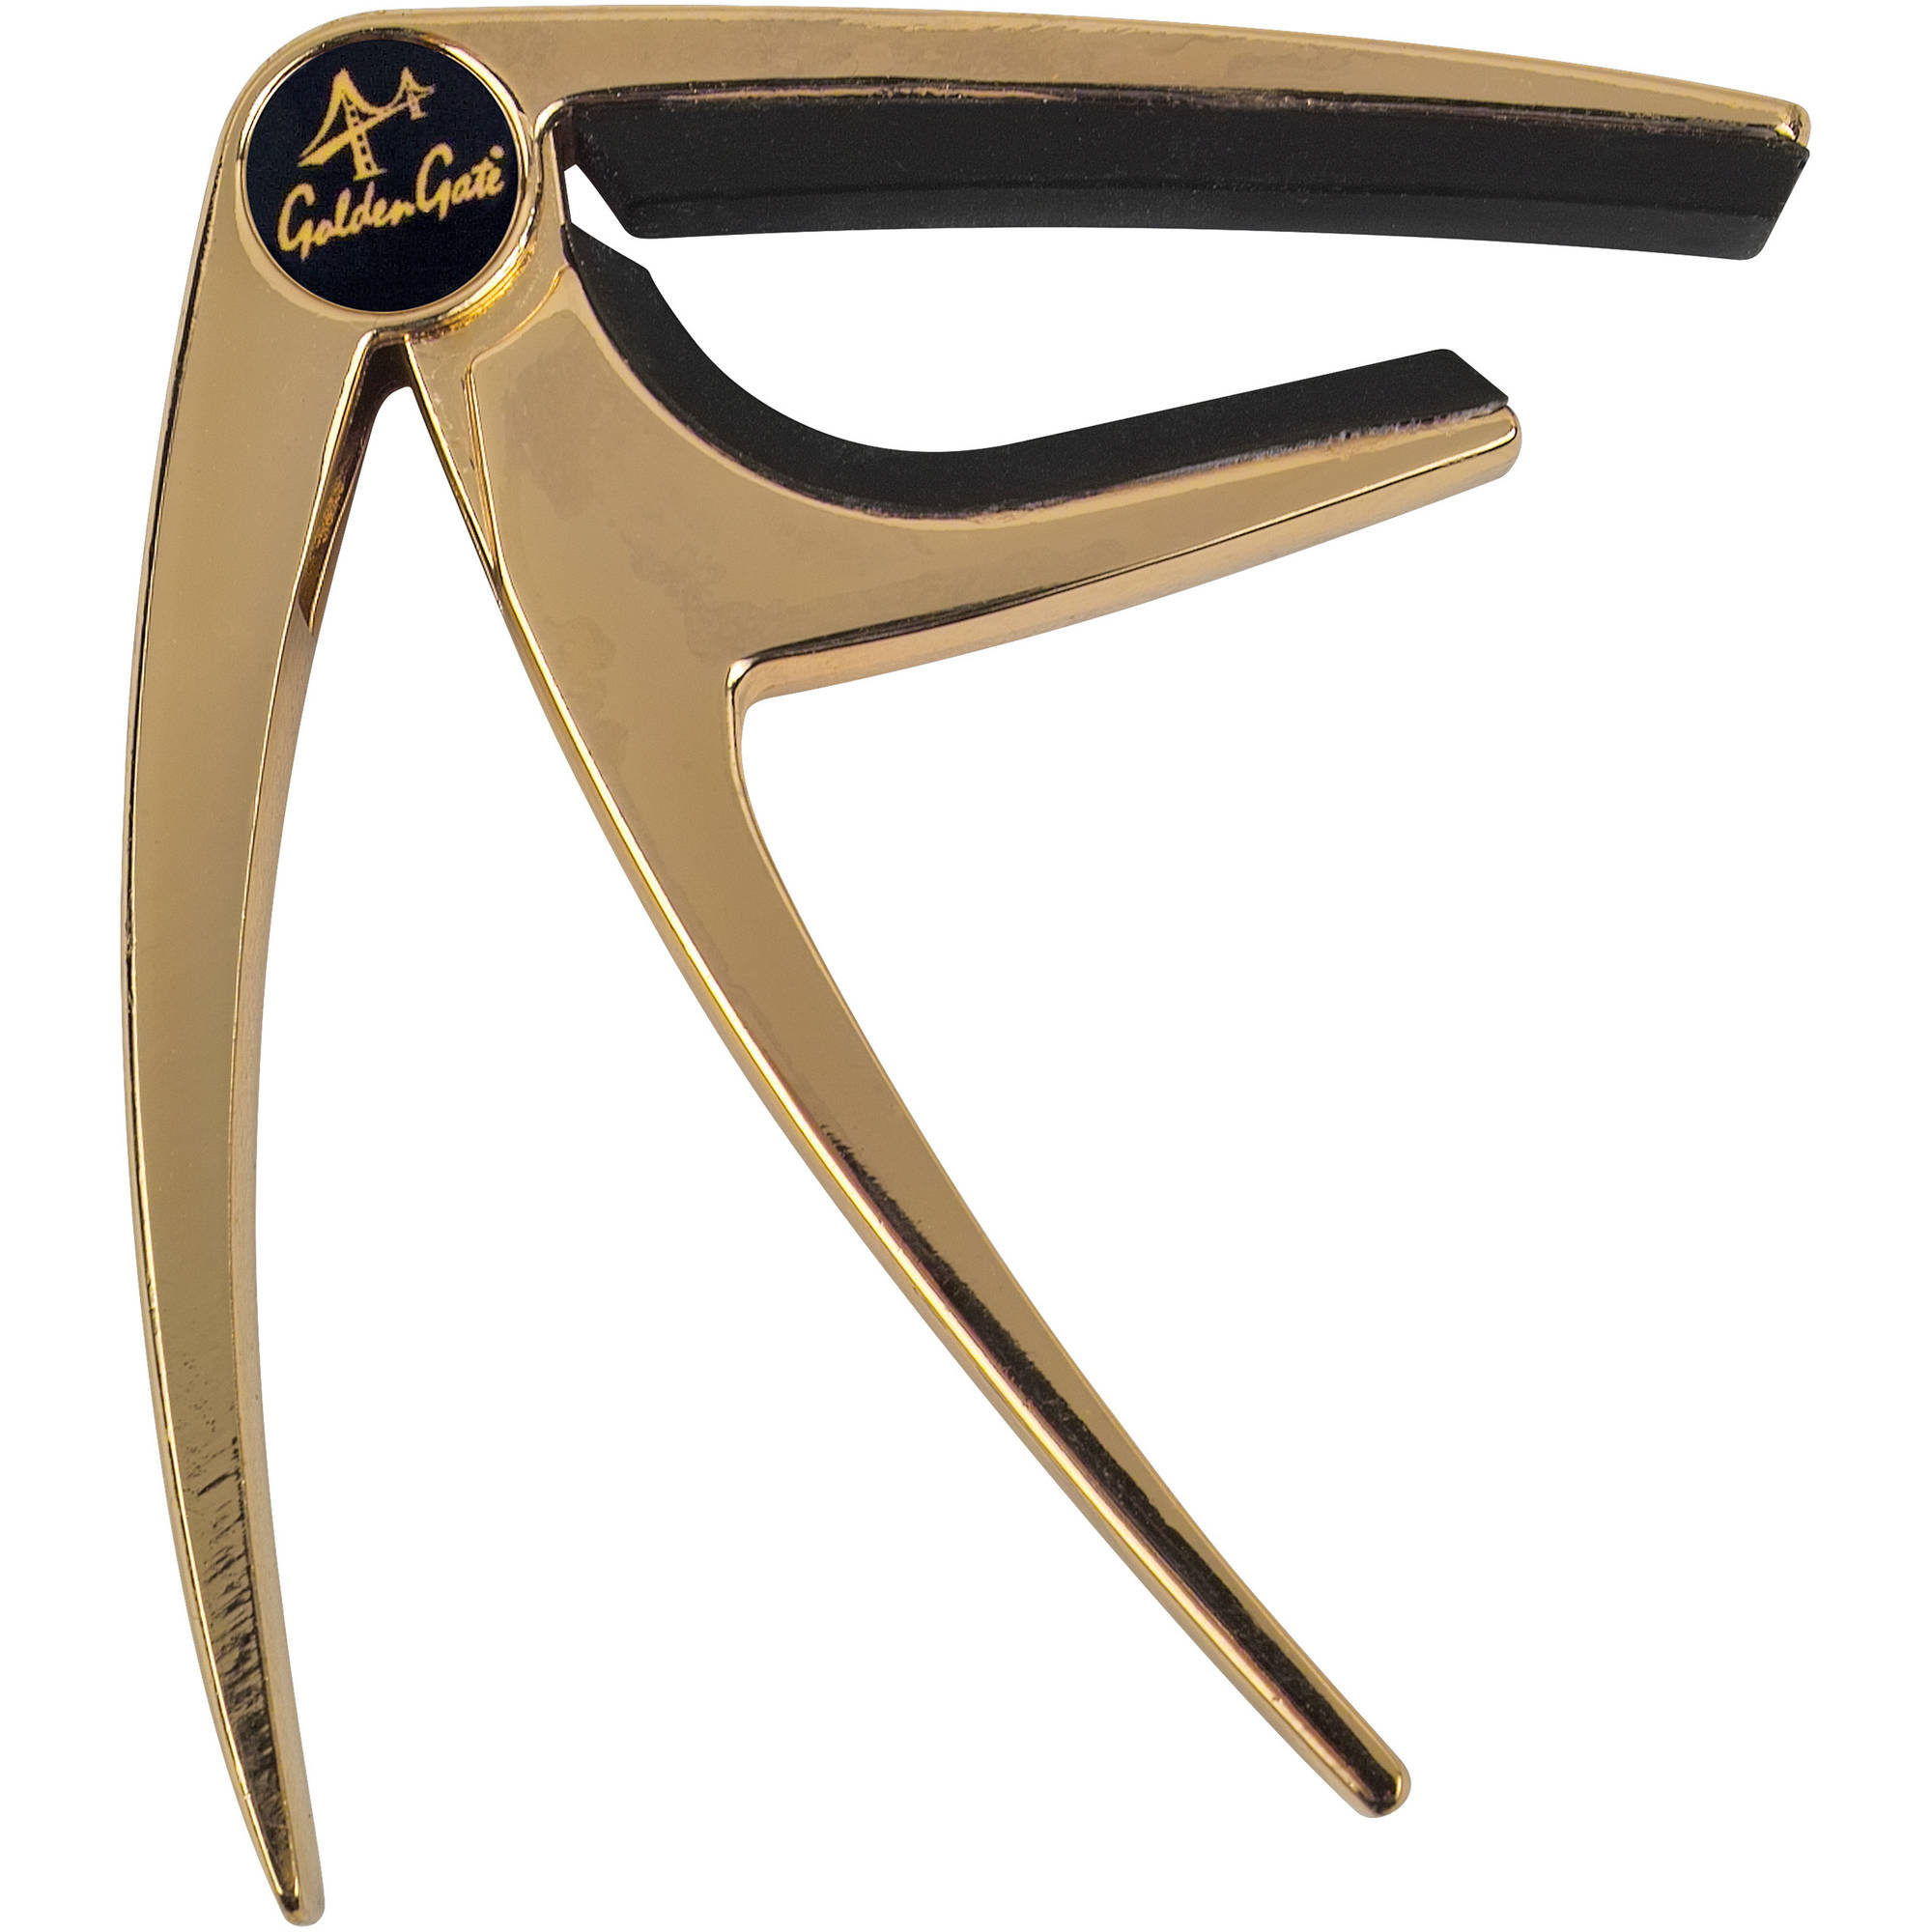 Golden Gate GC-50GD Acoustic Guitar Capo, Gold